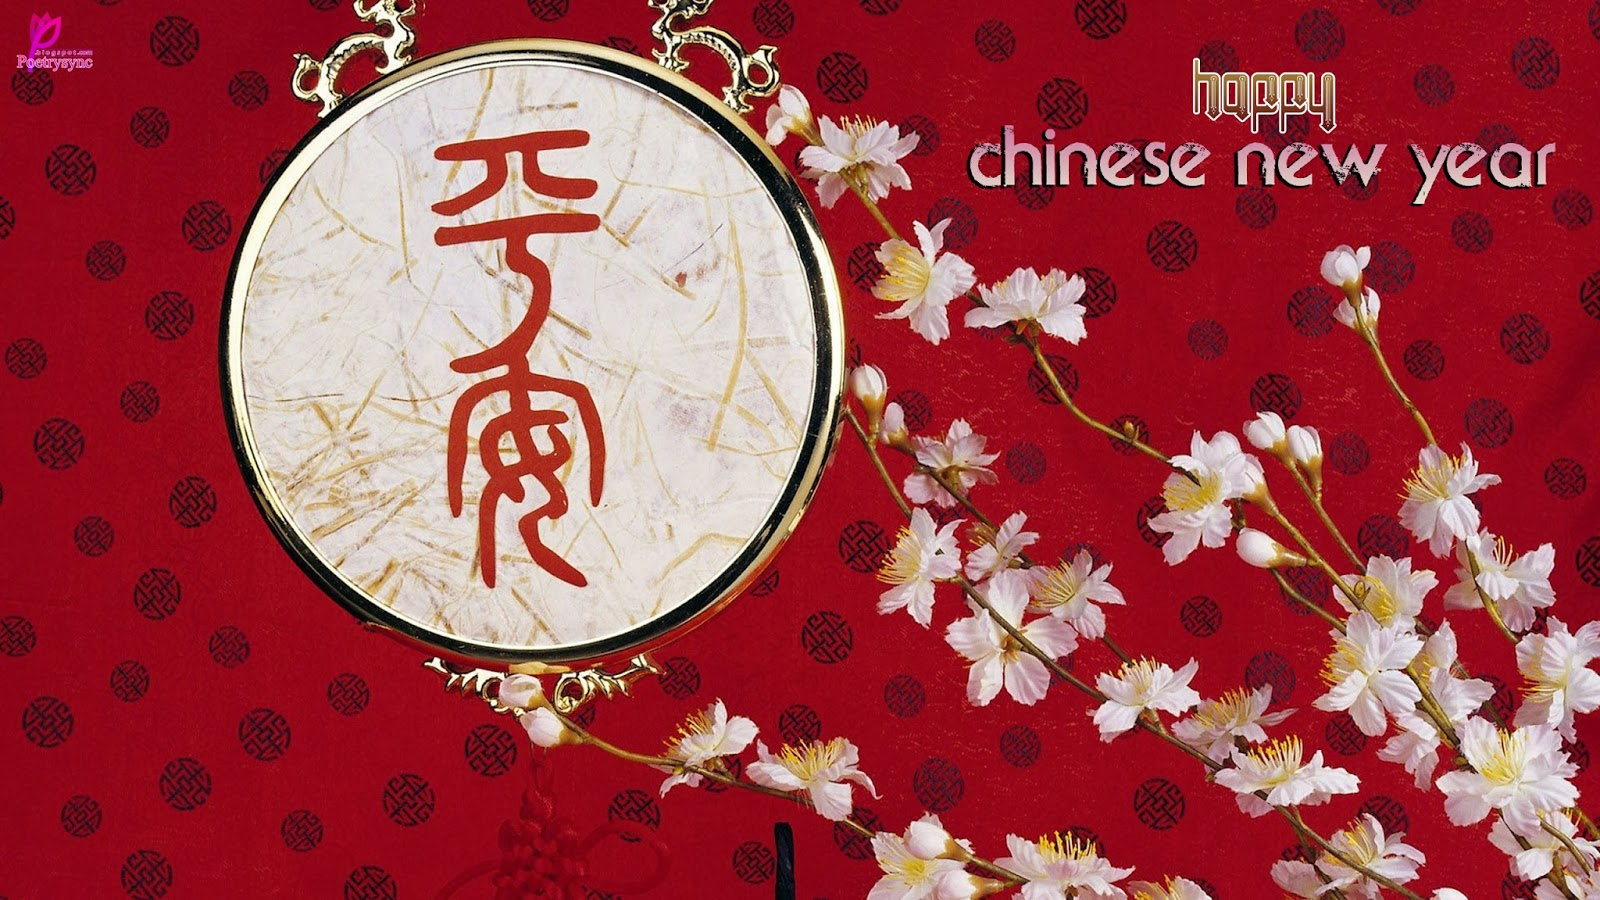 Happy Chinese New Year Happy Lunar New Year 2014 Wishes and Greetings 1600x900